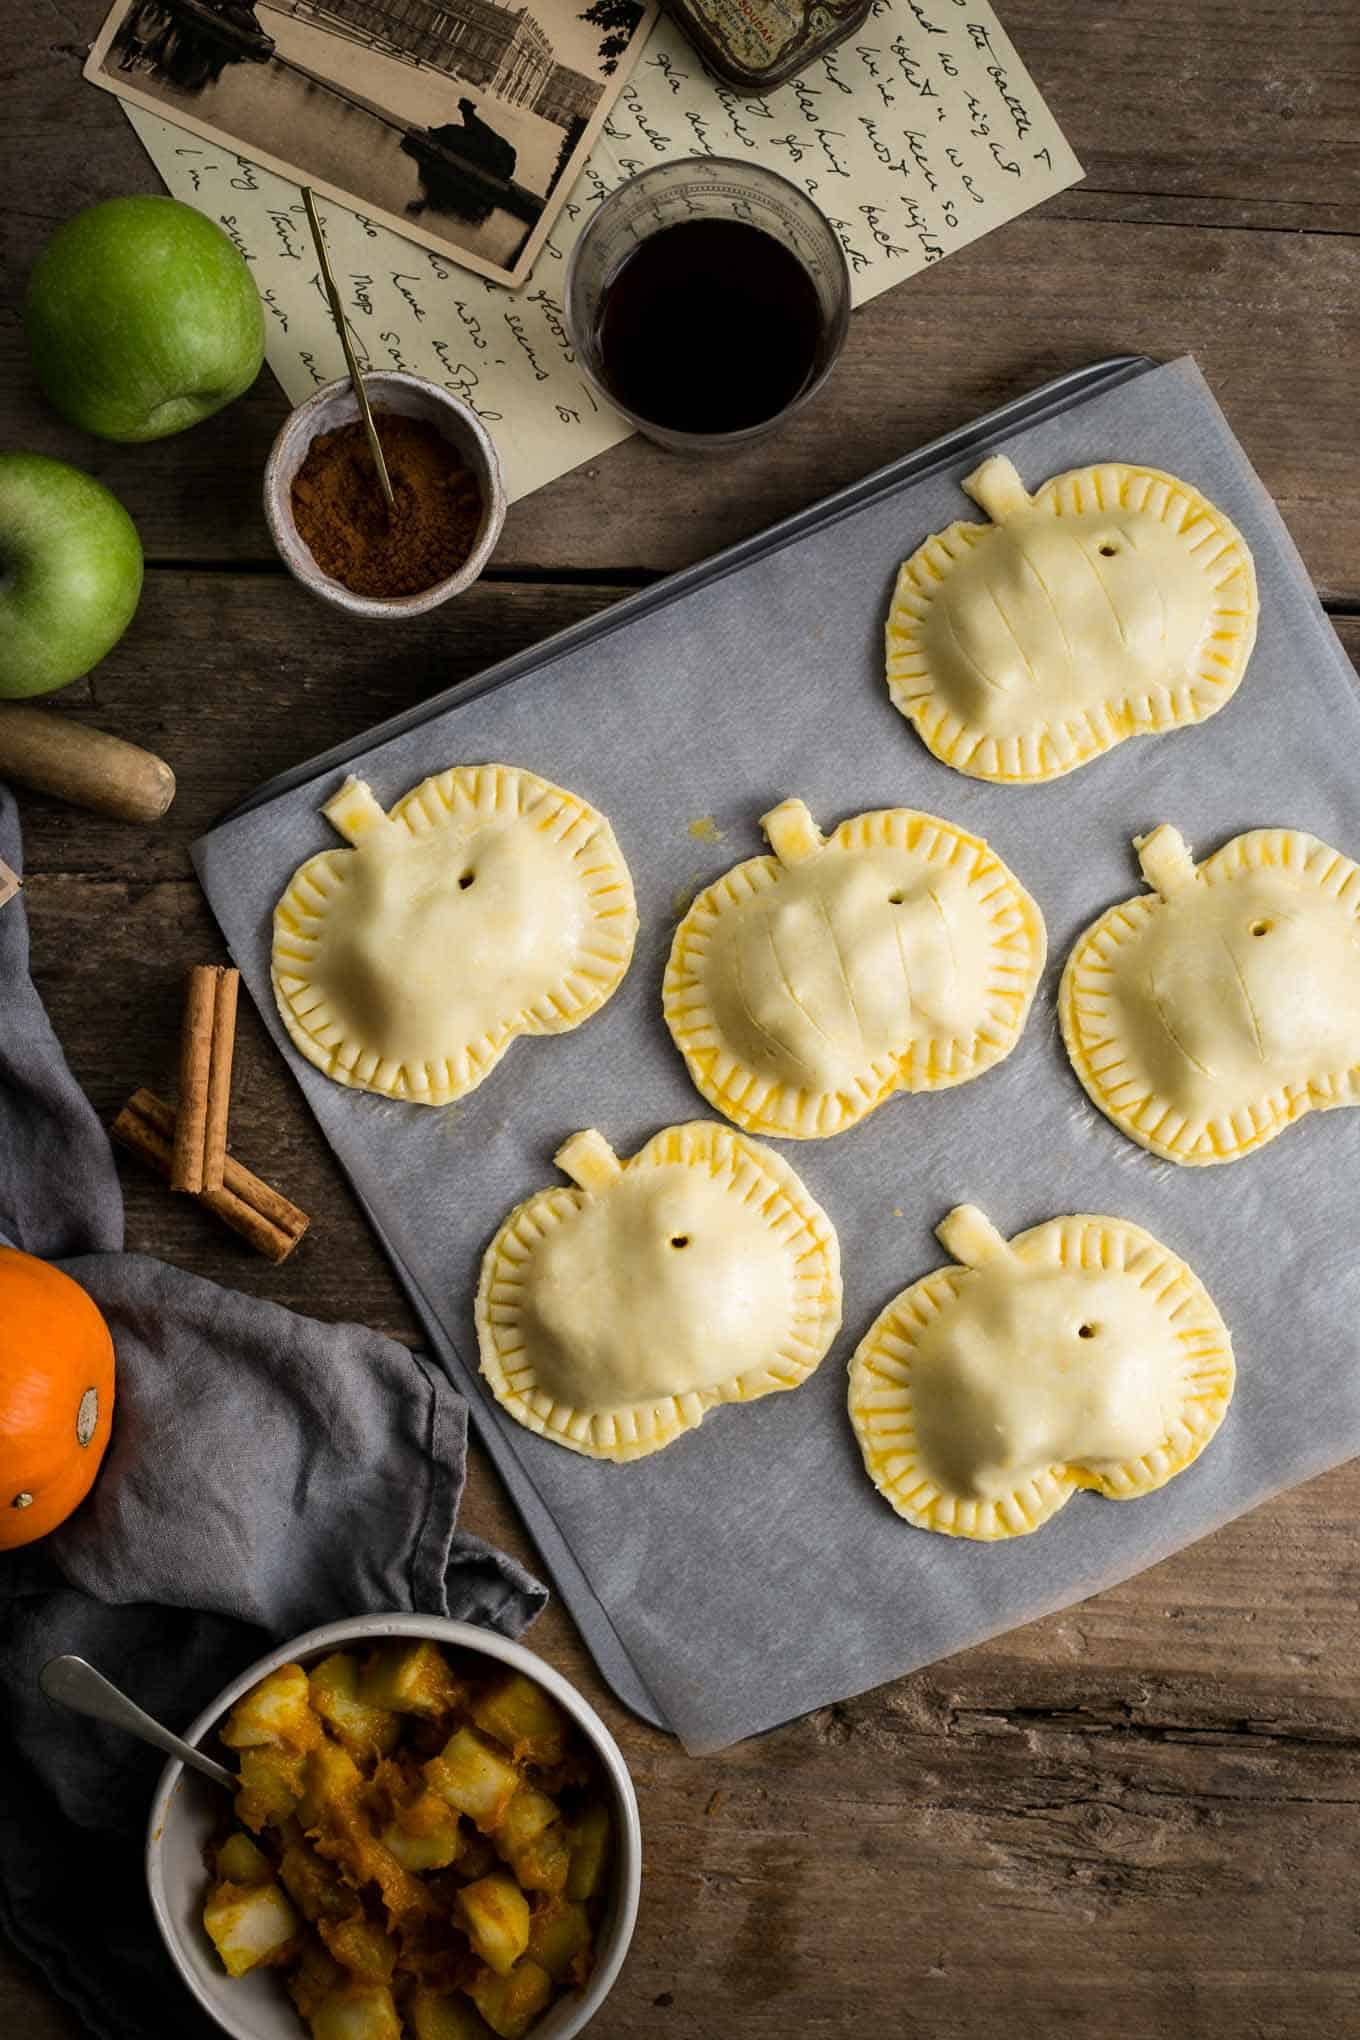 Easy and delicious recipe for spiced apple and #pumpkin hand pies #vegan   via @annabanana.co